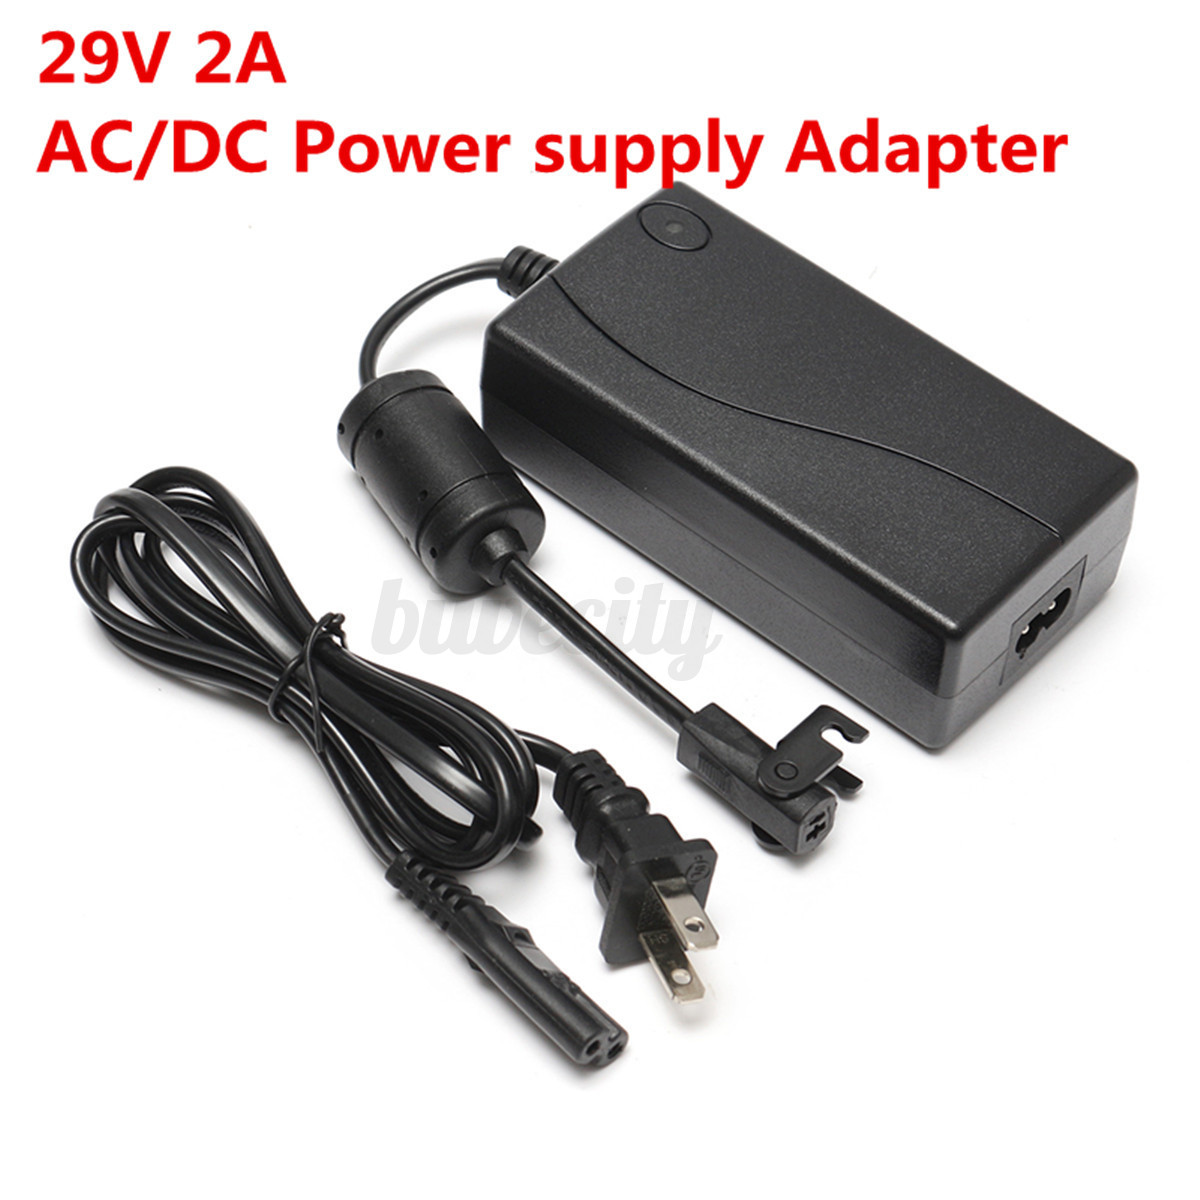 29v 2a Ac Dc Power Supply Adapter Transformer For Electric